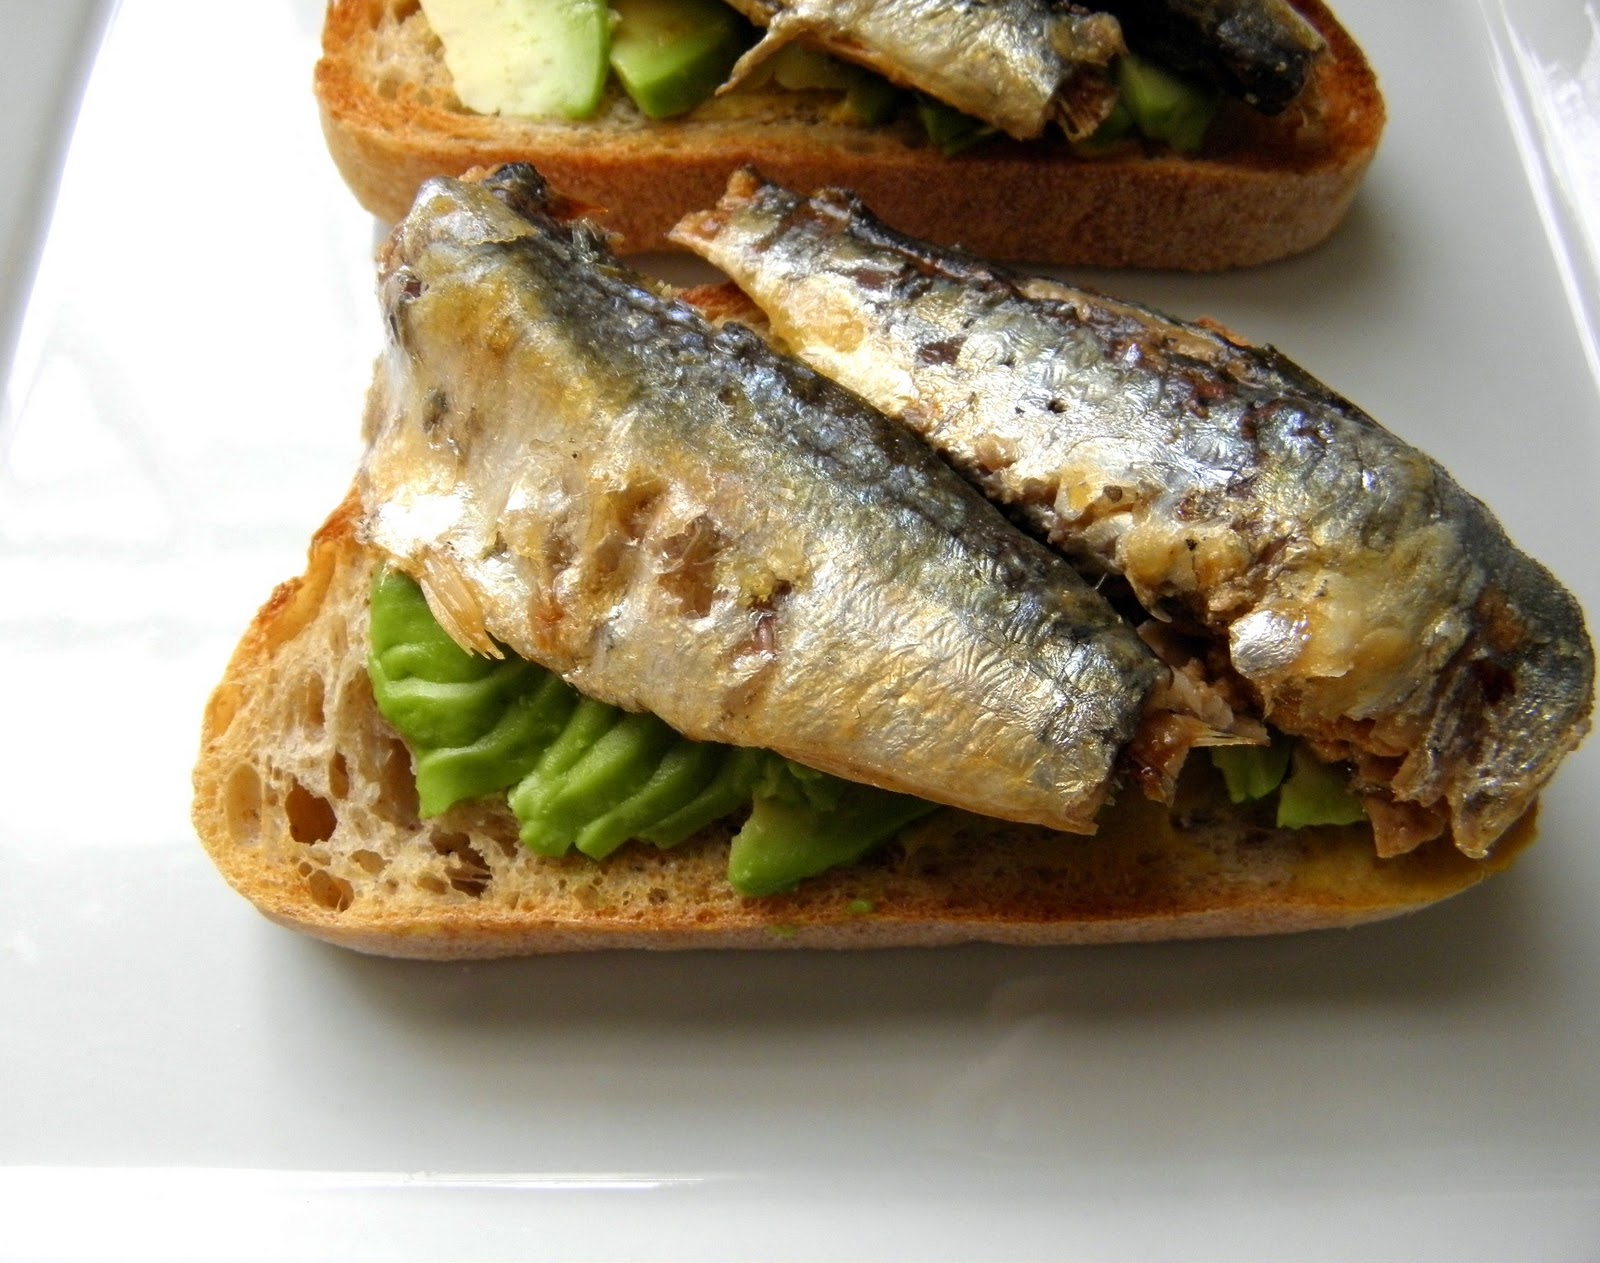 sardines sandwich Open-faced sardine and onion sandwich was this sandwich good are you kidding me it was so satisfying the sardines themselves lend the flavor and texture of what.